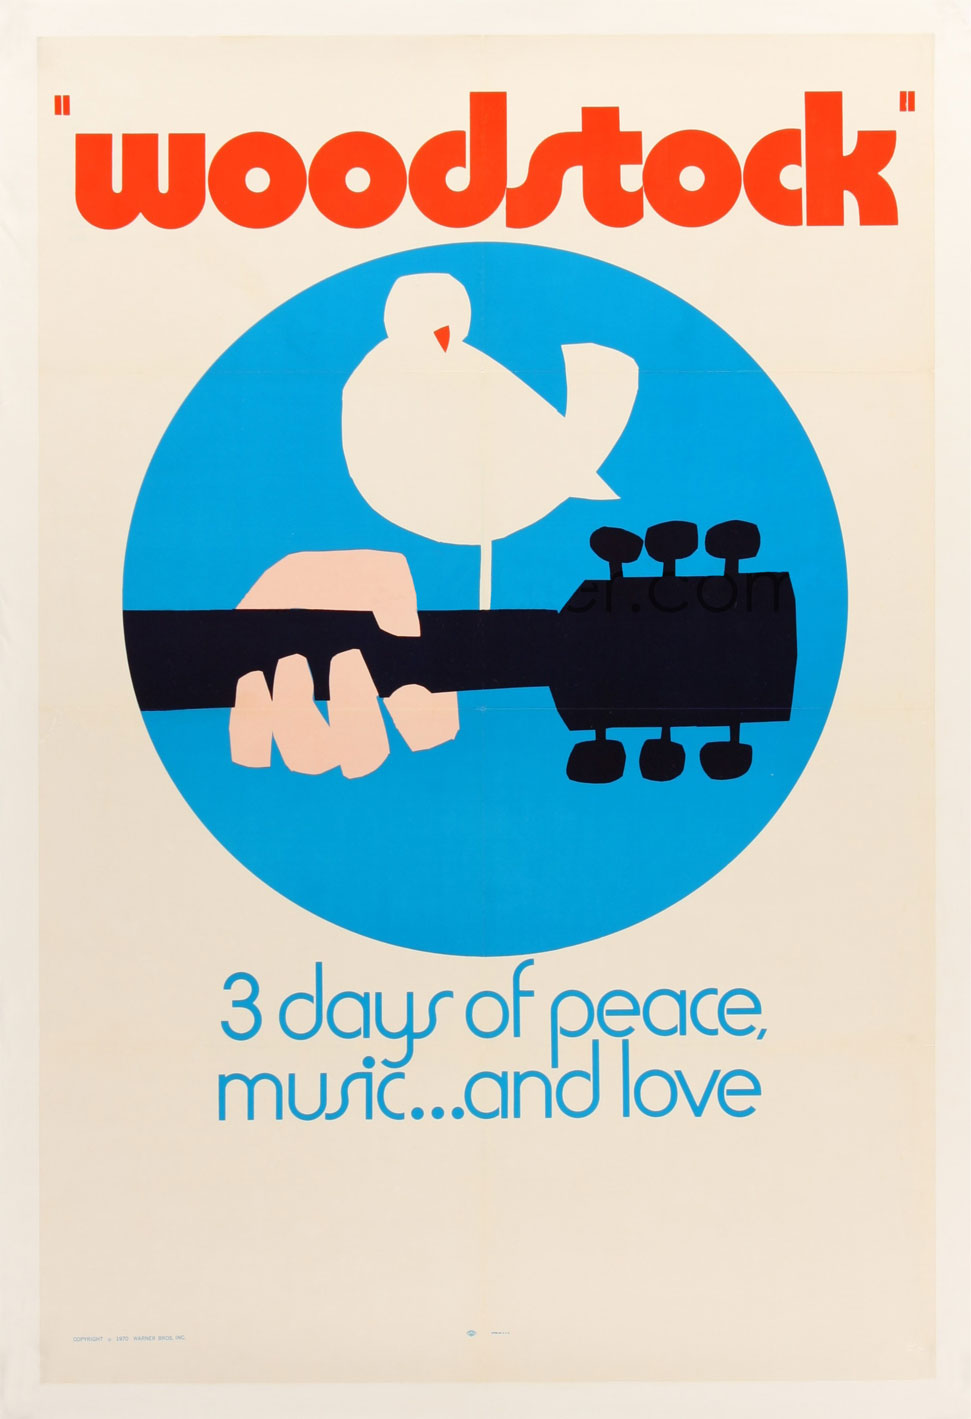 woodstock-poster-english.jpeg